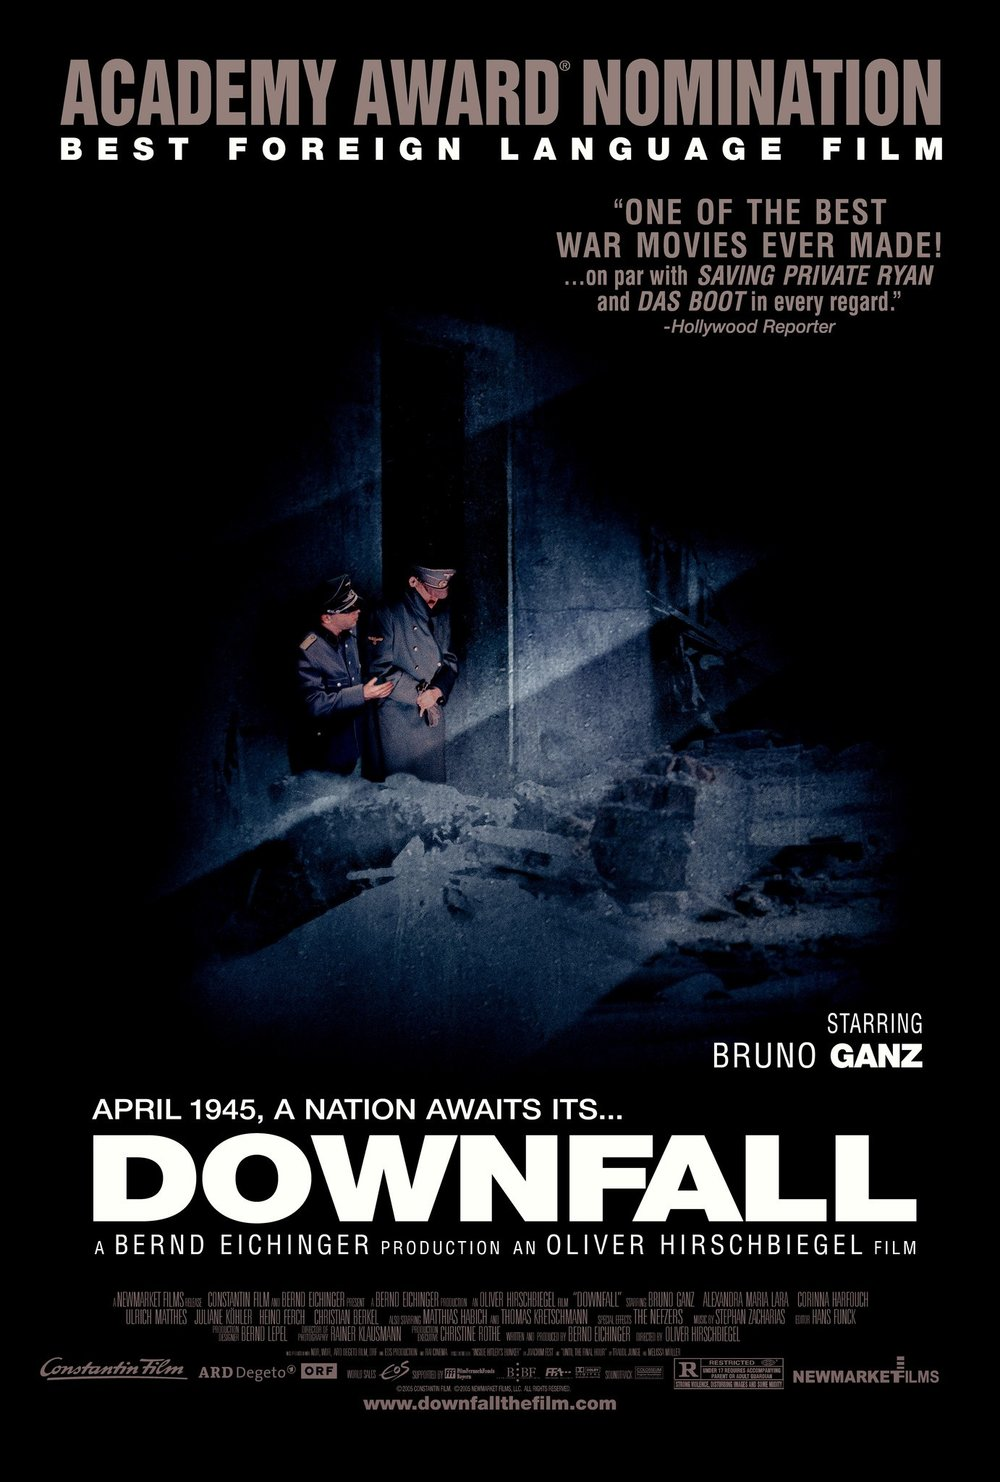 Downfall (2004) - Directed by: Oliver HirschbiegelStarring: Bruno Ganz, Alexandra Maria Lara, Juliane Kohler, Thomas KretchschmannRated: R for Strong Violence, Disturbing Images, and Some NudityRunning Time: 2 h 36 mTMM Score: 5 stars out of 5STRENGTHS: Acting, Directing, Writing, PerspectiveWEAKNESSES: -